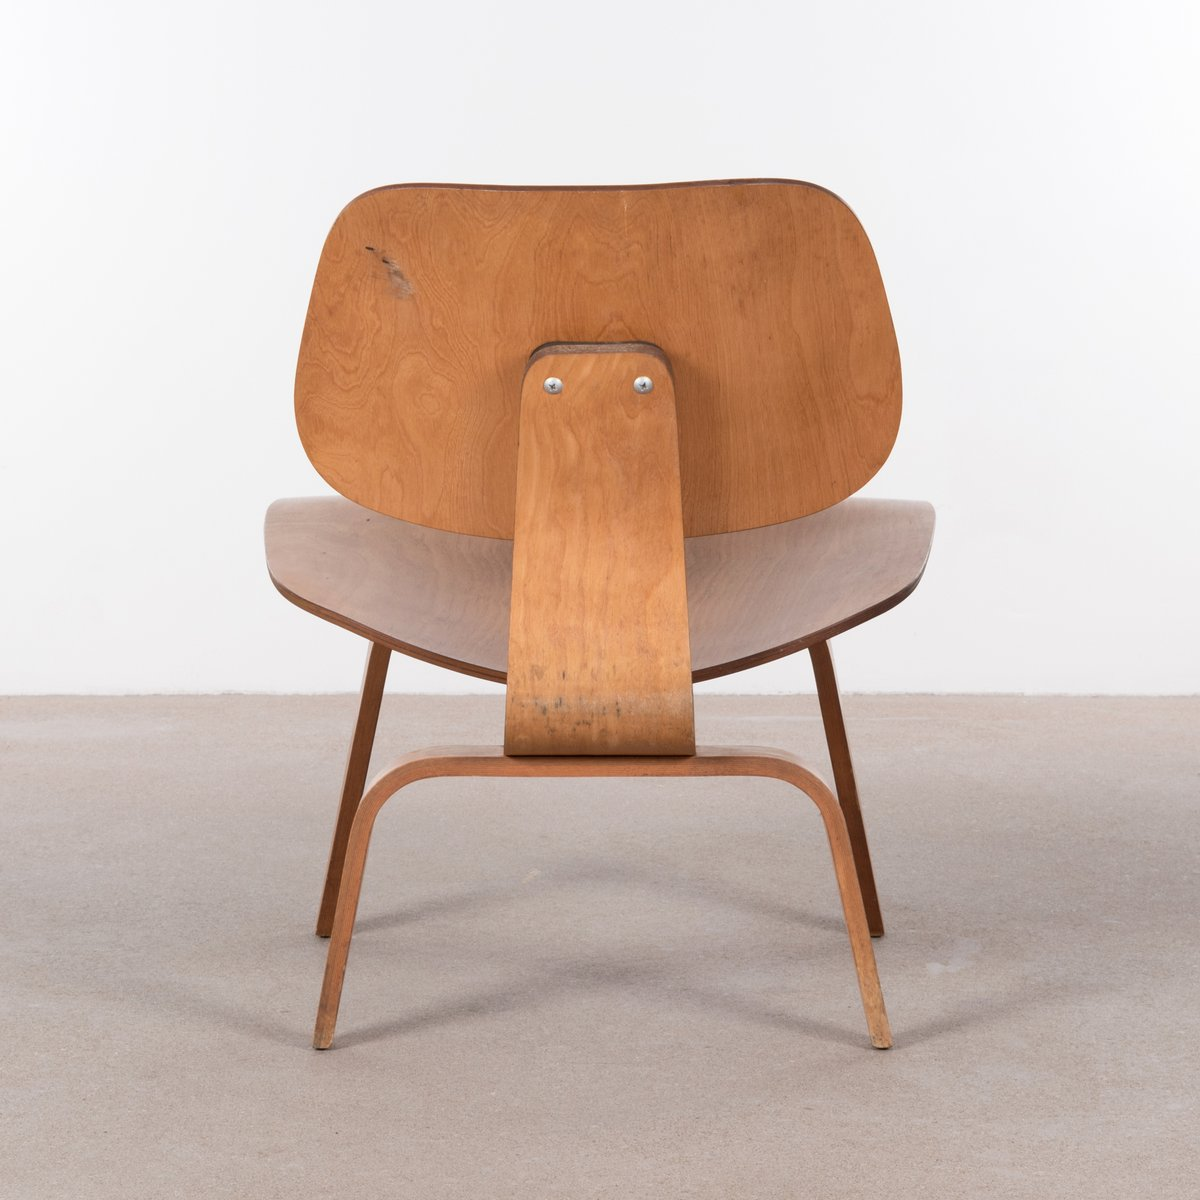 american lcw maple lounge chair by charles ray eames for herman miller 1950s for sale at pamono. Black Bedroom Furniture Sets. Home Design Ideas